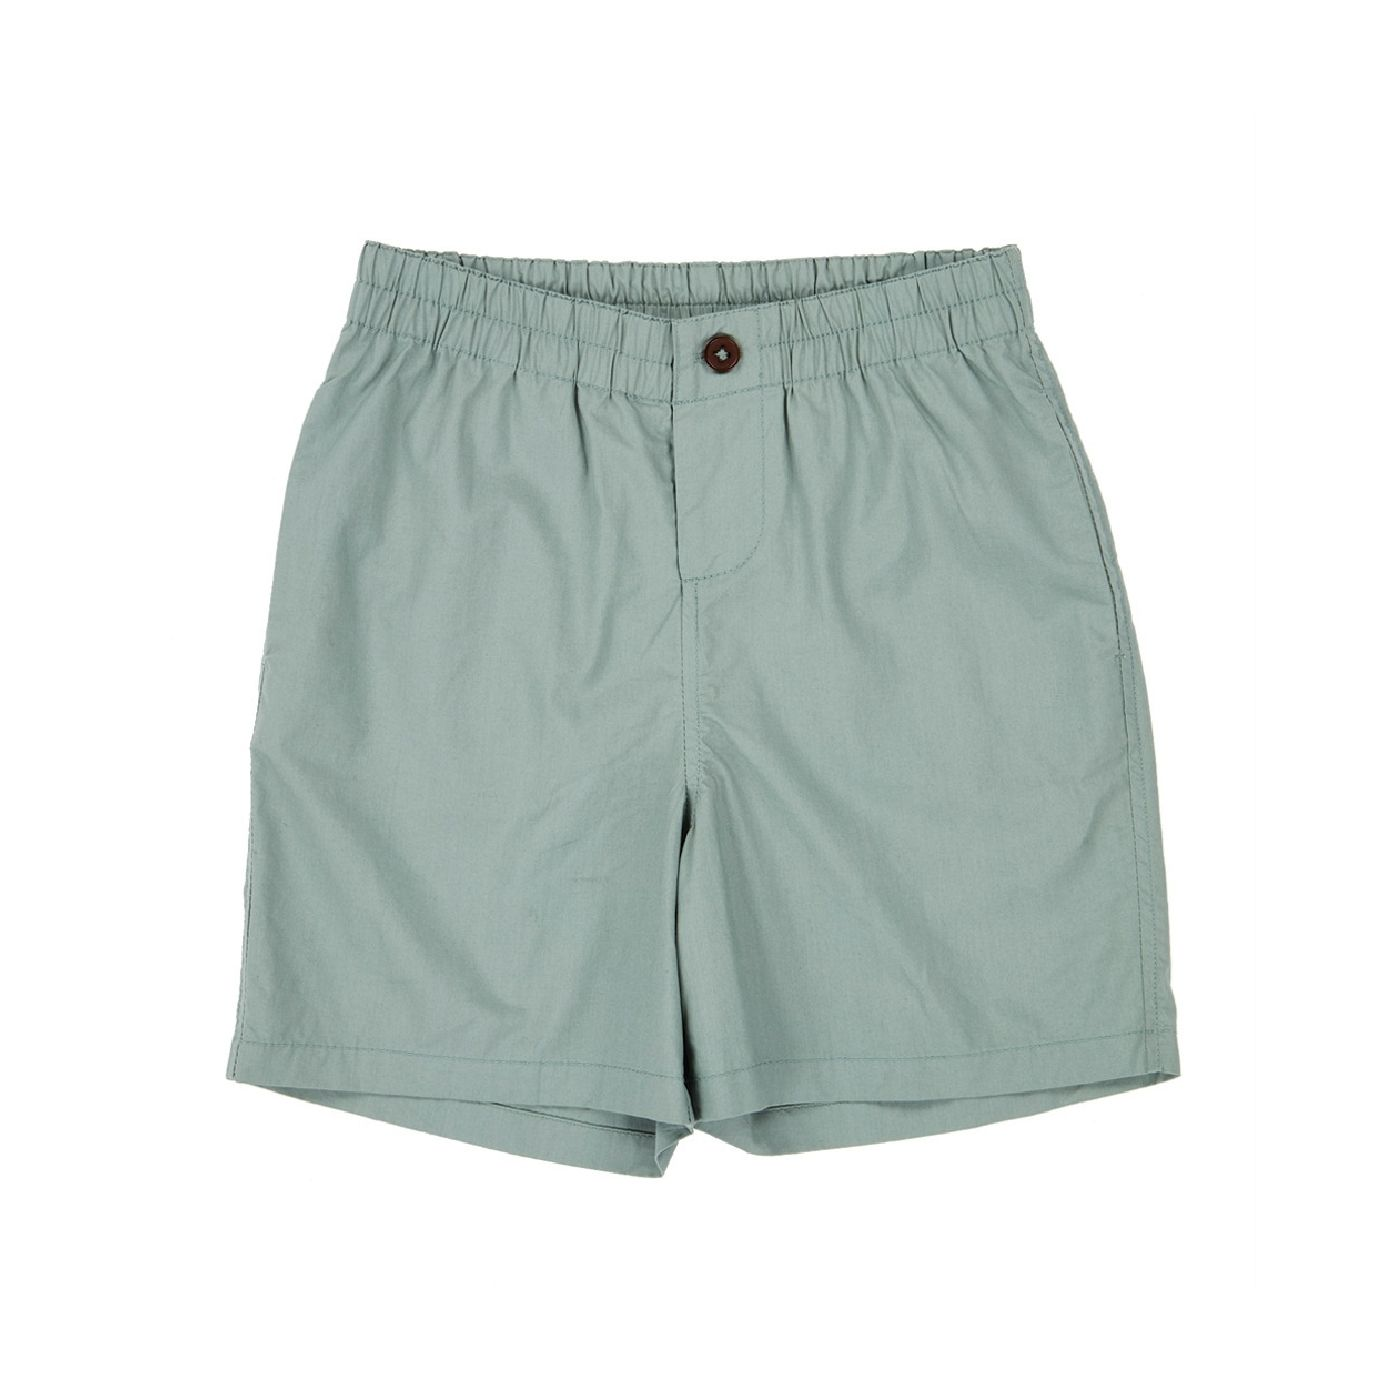 Karamell Baby & Kind - Graue Barbican Shorts - 1